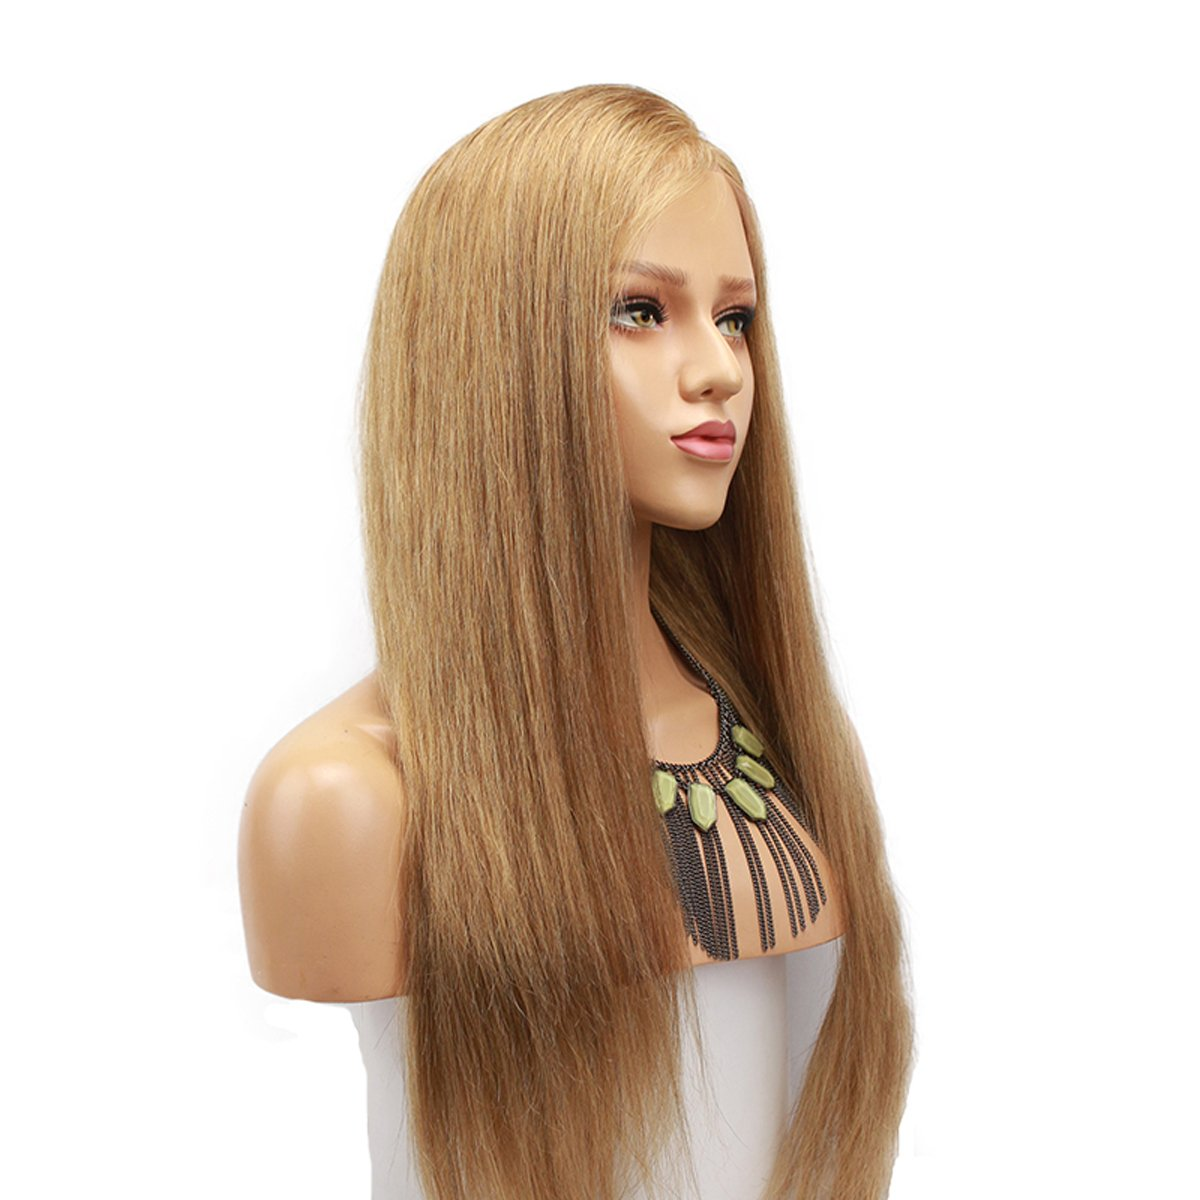 Dreambeauty #18 Blonde San Antonio Mall Color Lace Front Wig Women 2021 spring and summer new for Hair Human